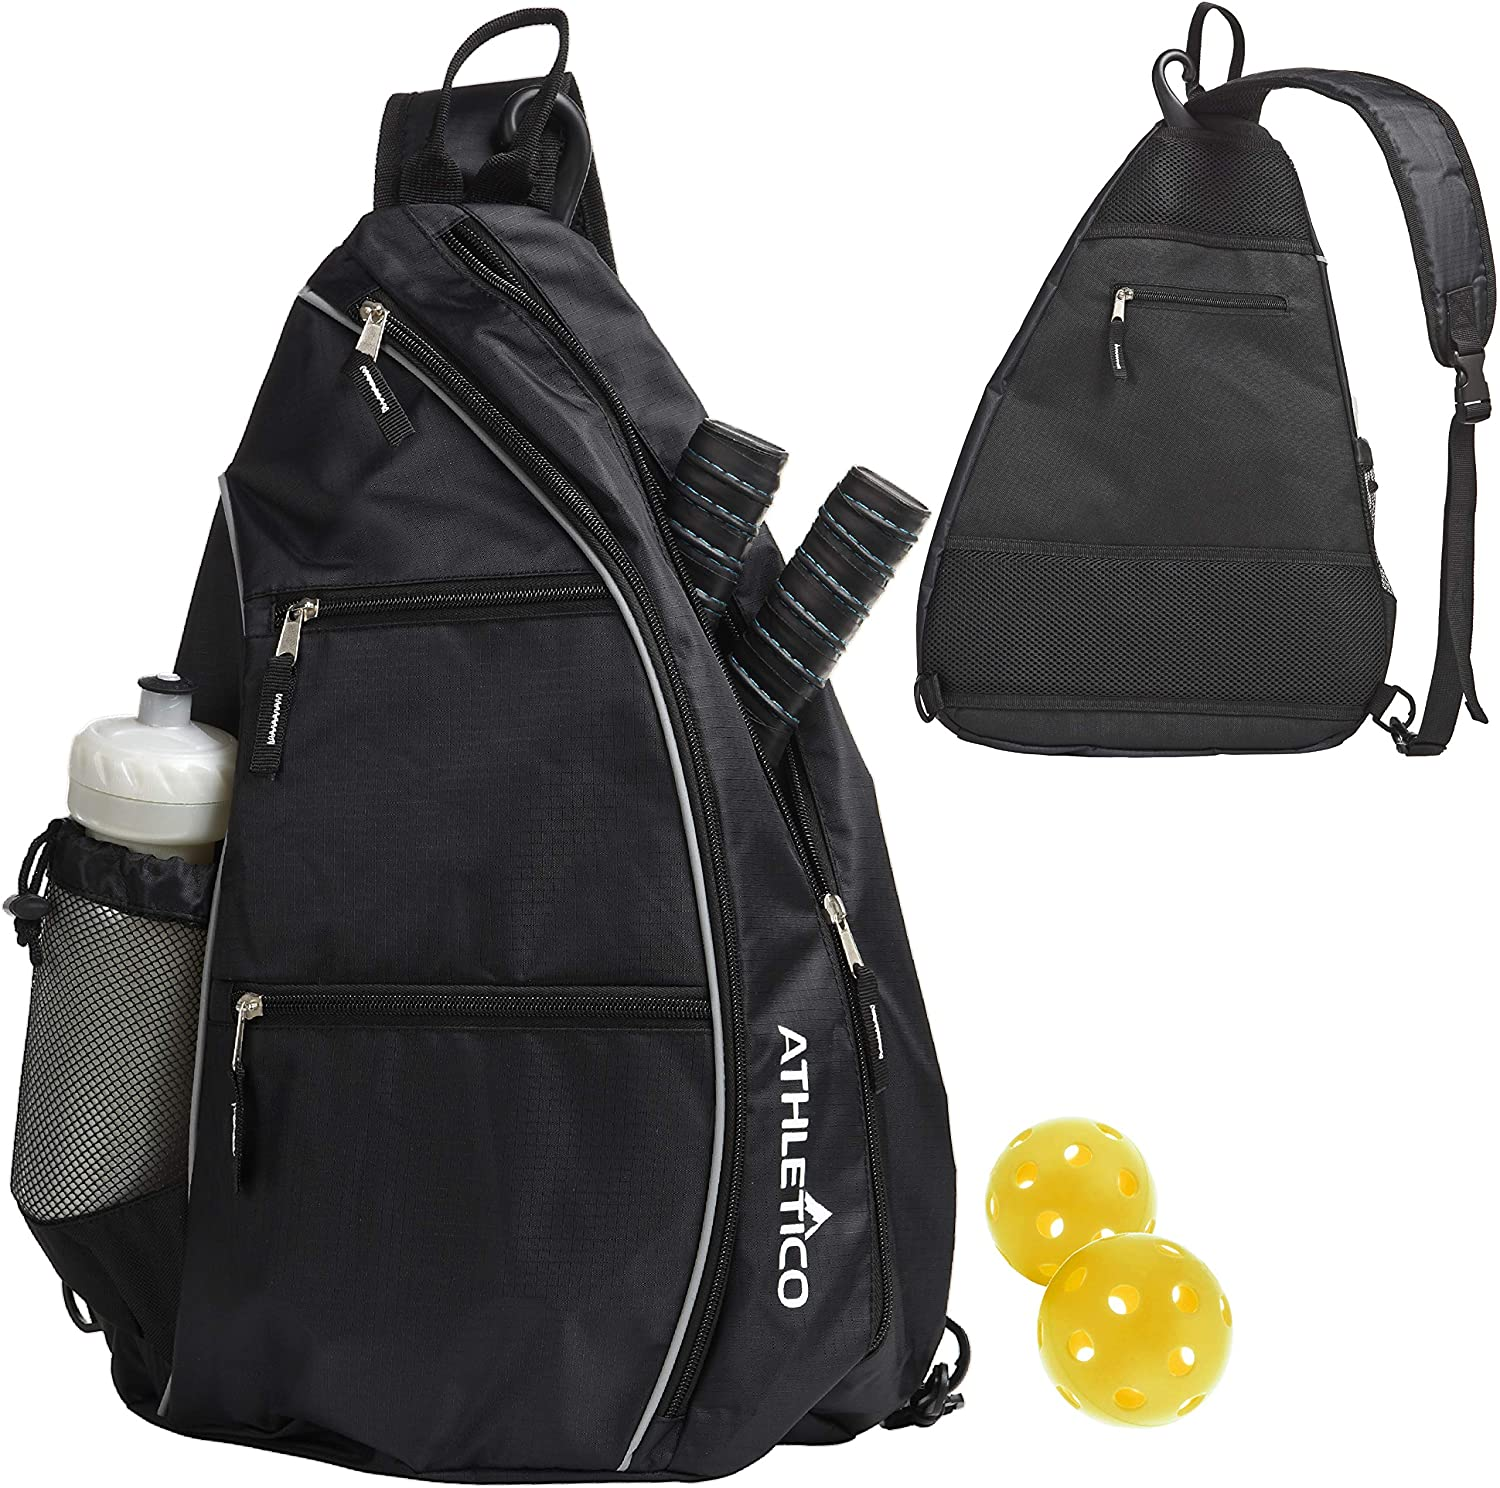 Athletico Sling Bag - Crossbody Fees free!! Pickleball for Tennis Backpack Price reduction